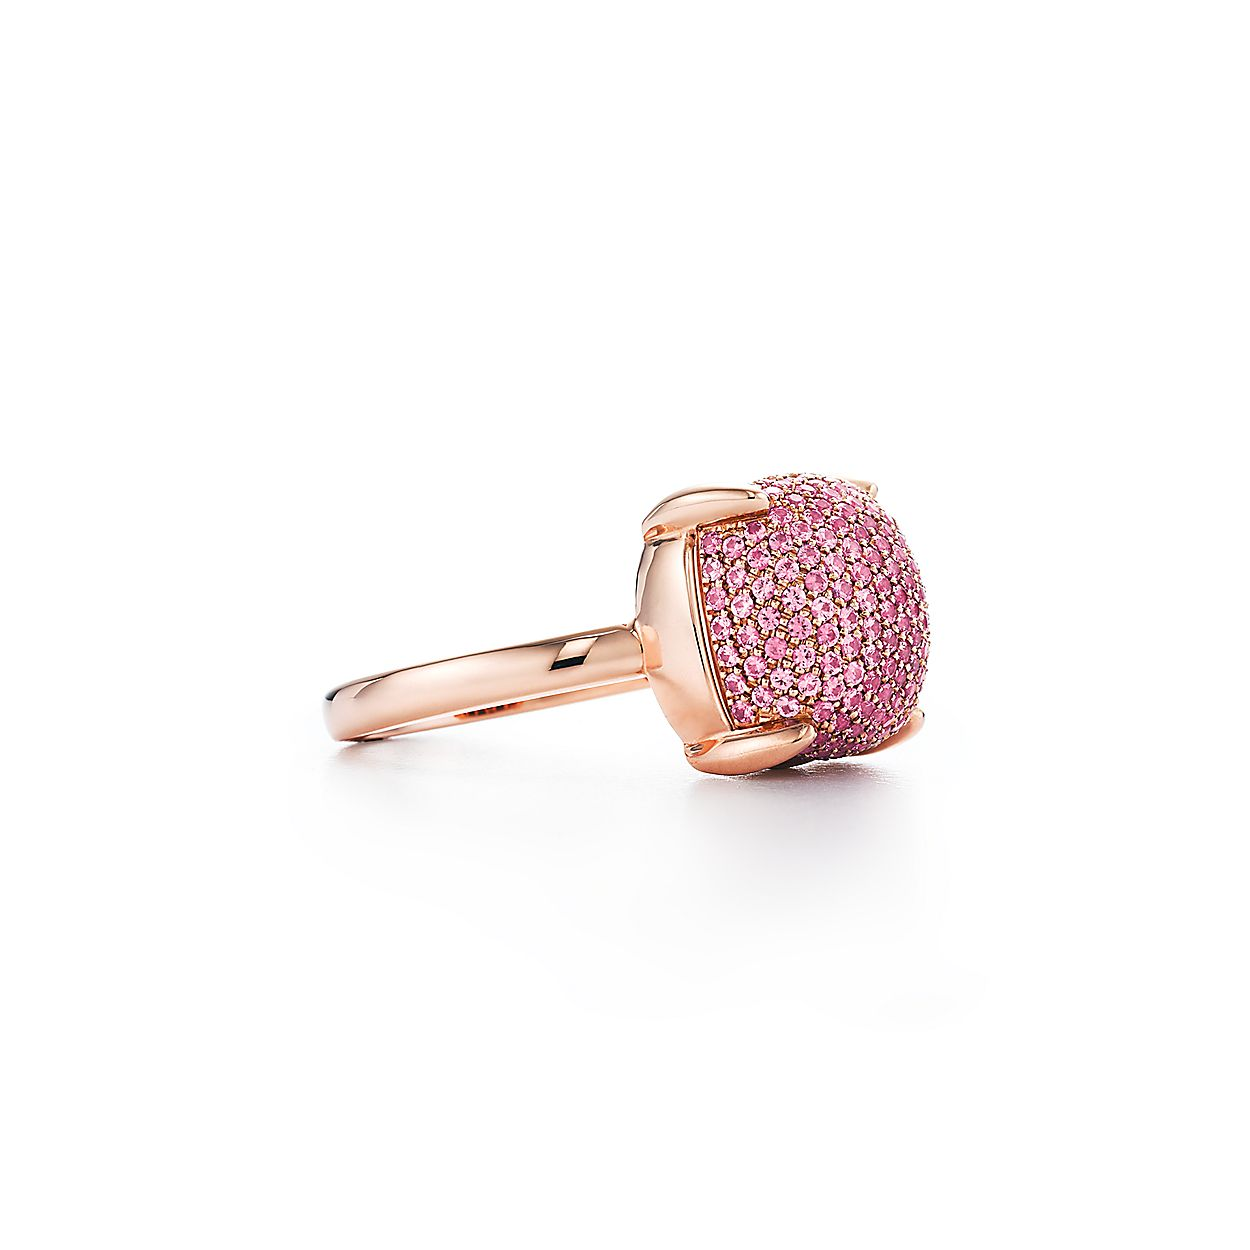 45aa71ae6 Paloma's Sugar Stacks ring in 18k rose gold with pink sapphires ...